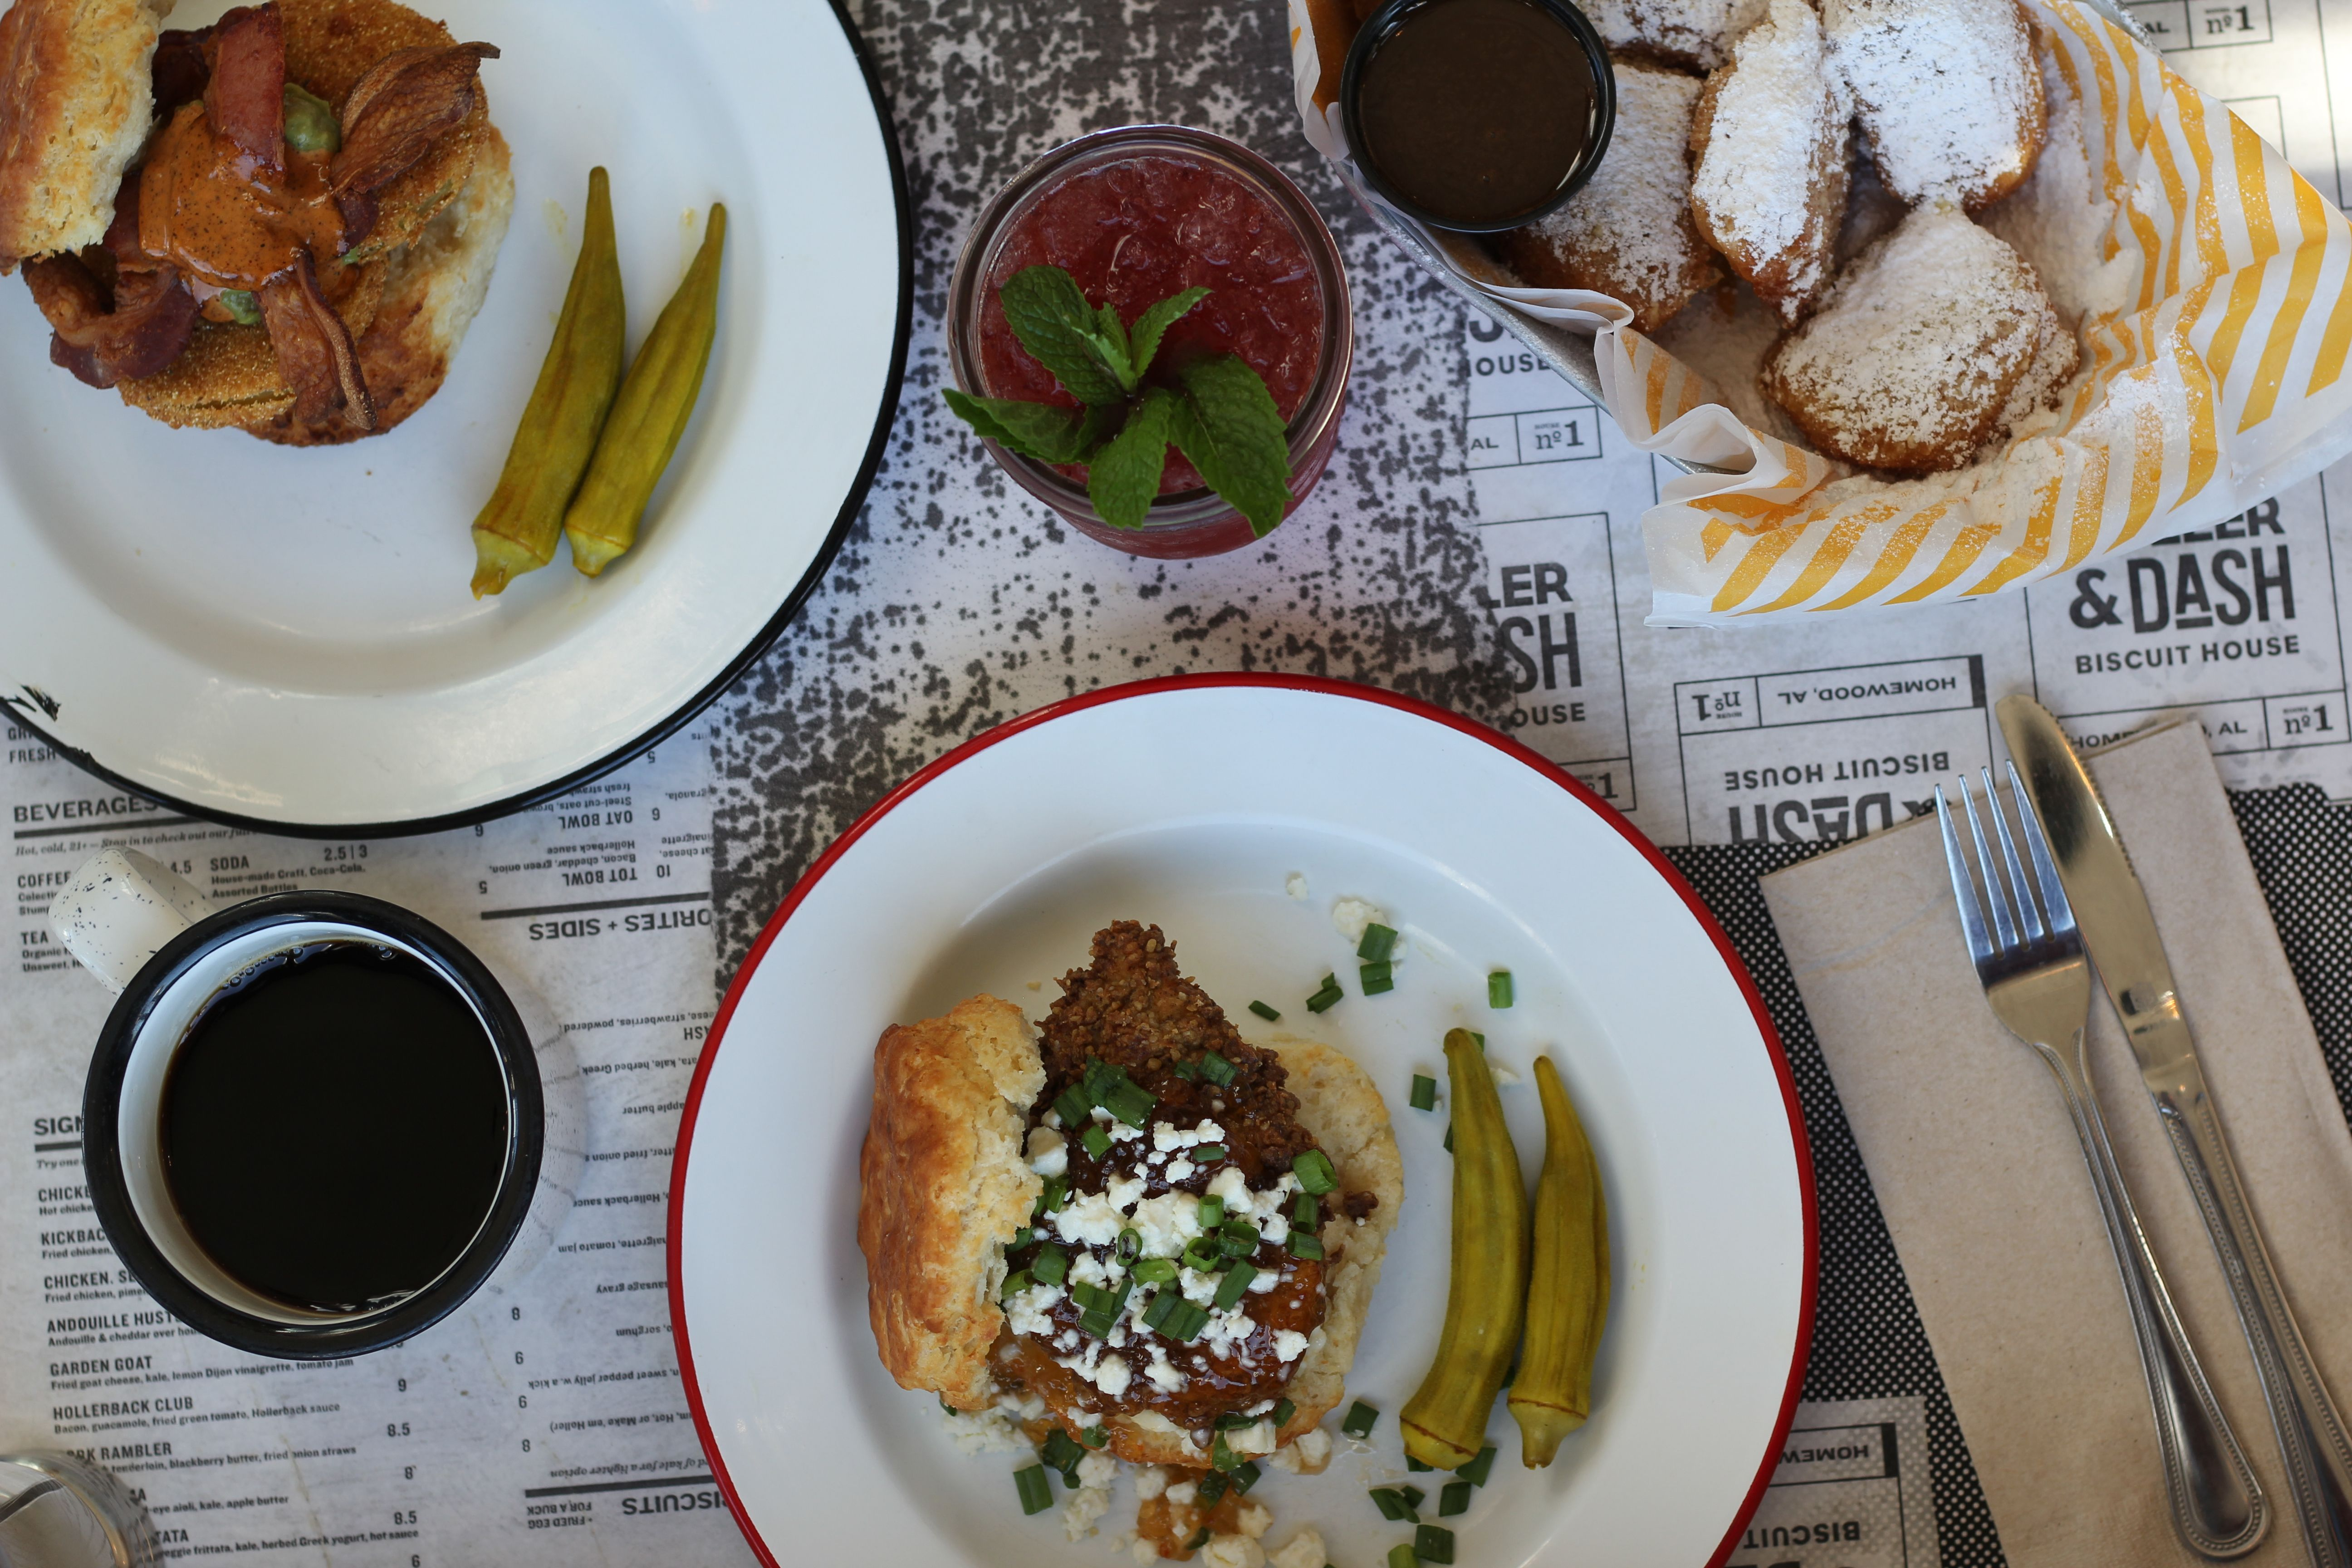 Chef Brandon Frohne's Tips for Making Biscuits - Southern